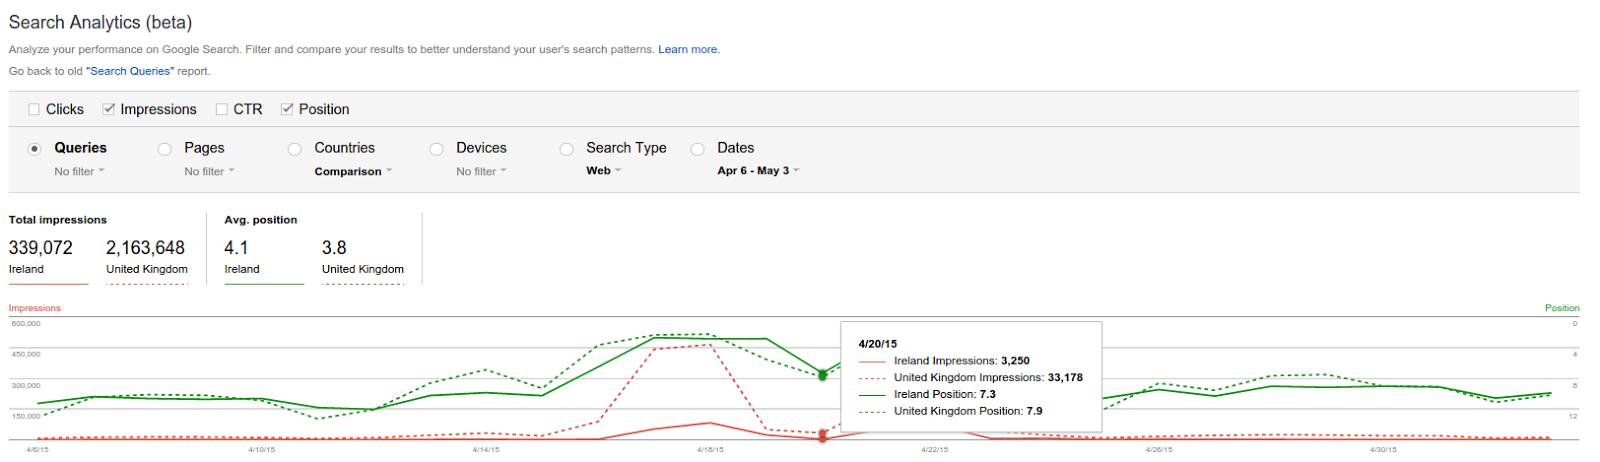 Search Analytics report showing impressions by country.